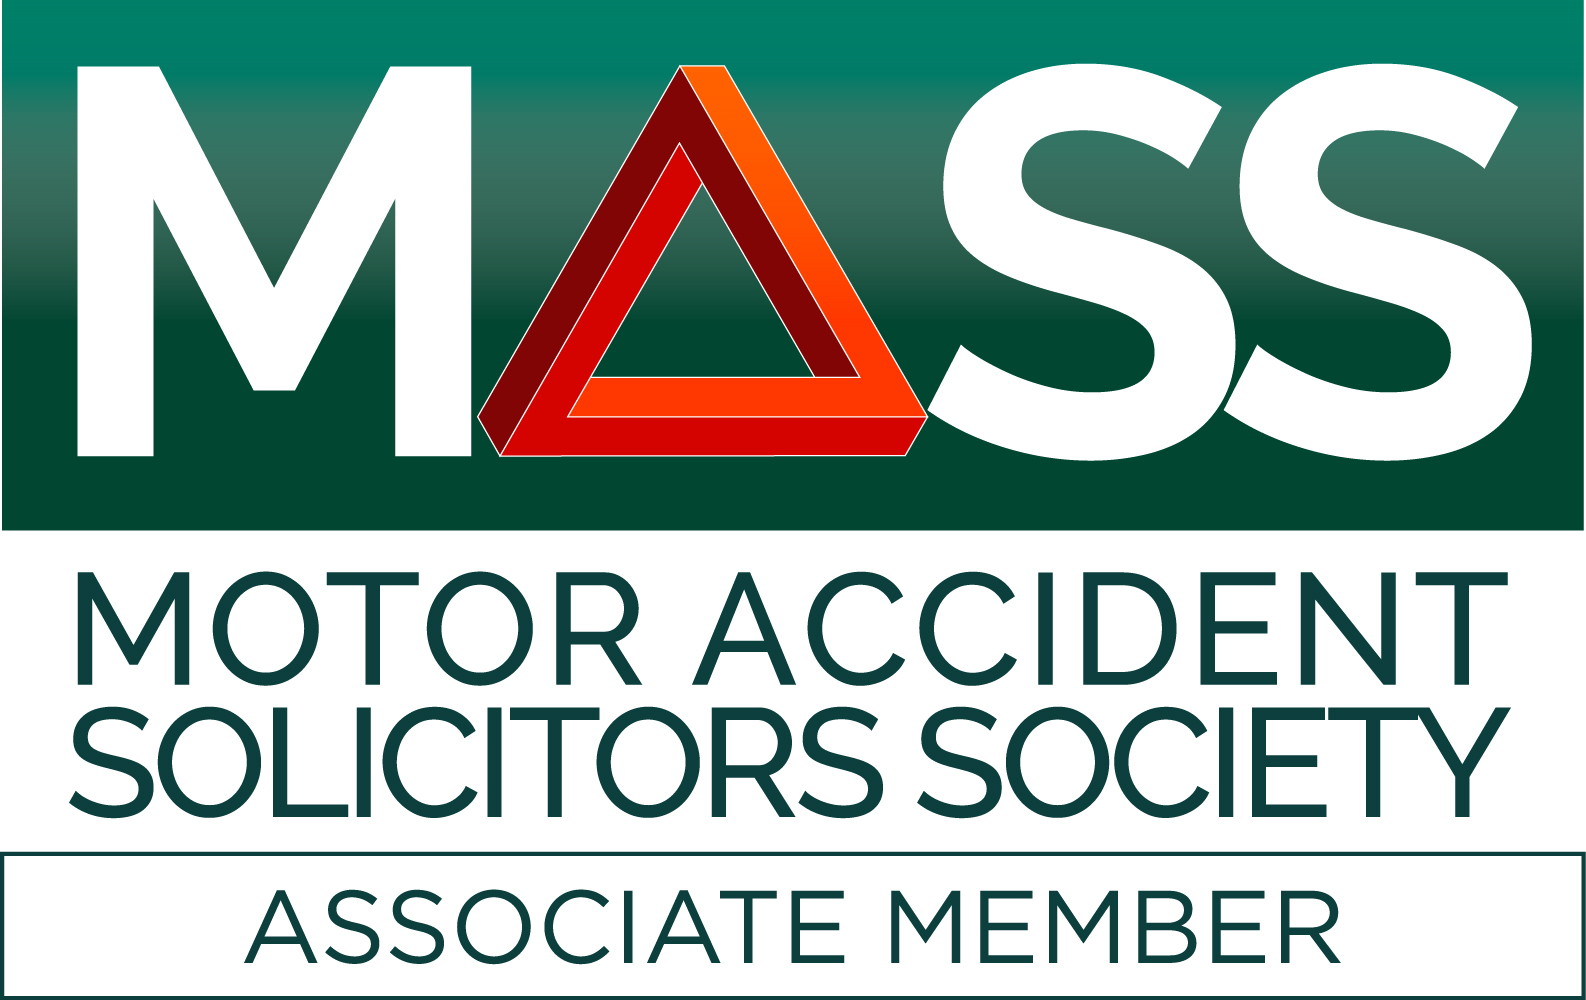 Associate Membership - benefits